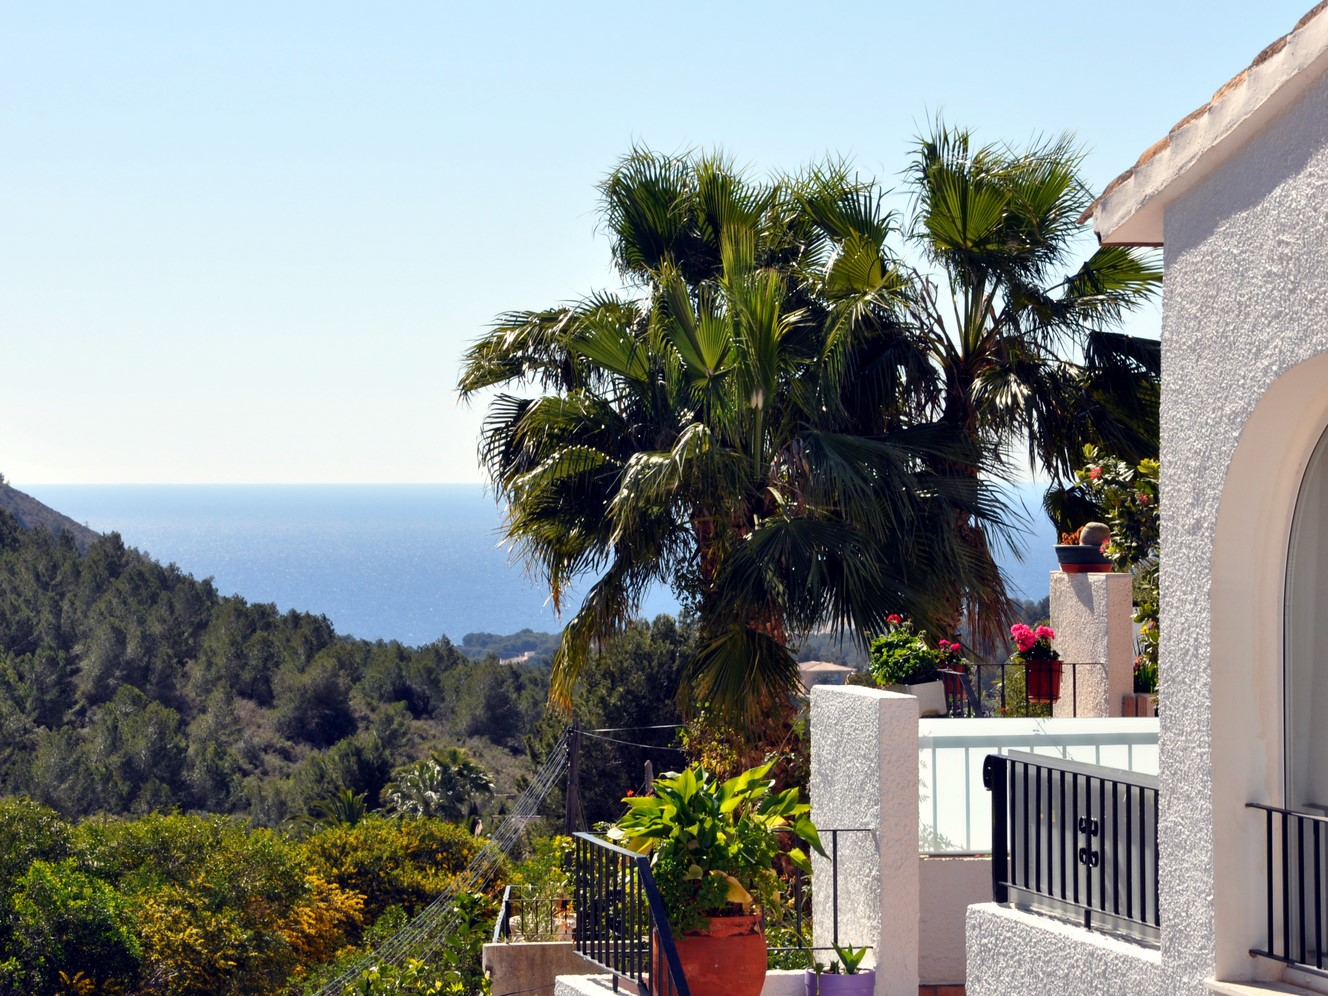 SEA VIEW VILLA ON LOS ALCAZARES, GOLDEN VALLEY